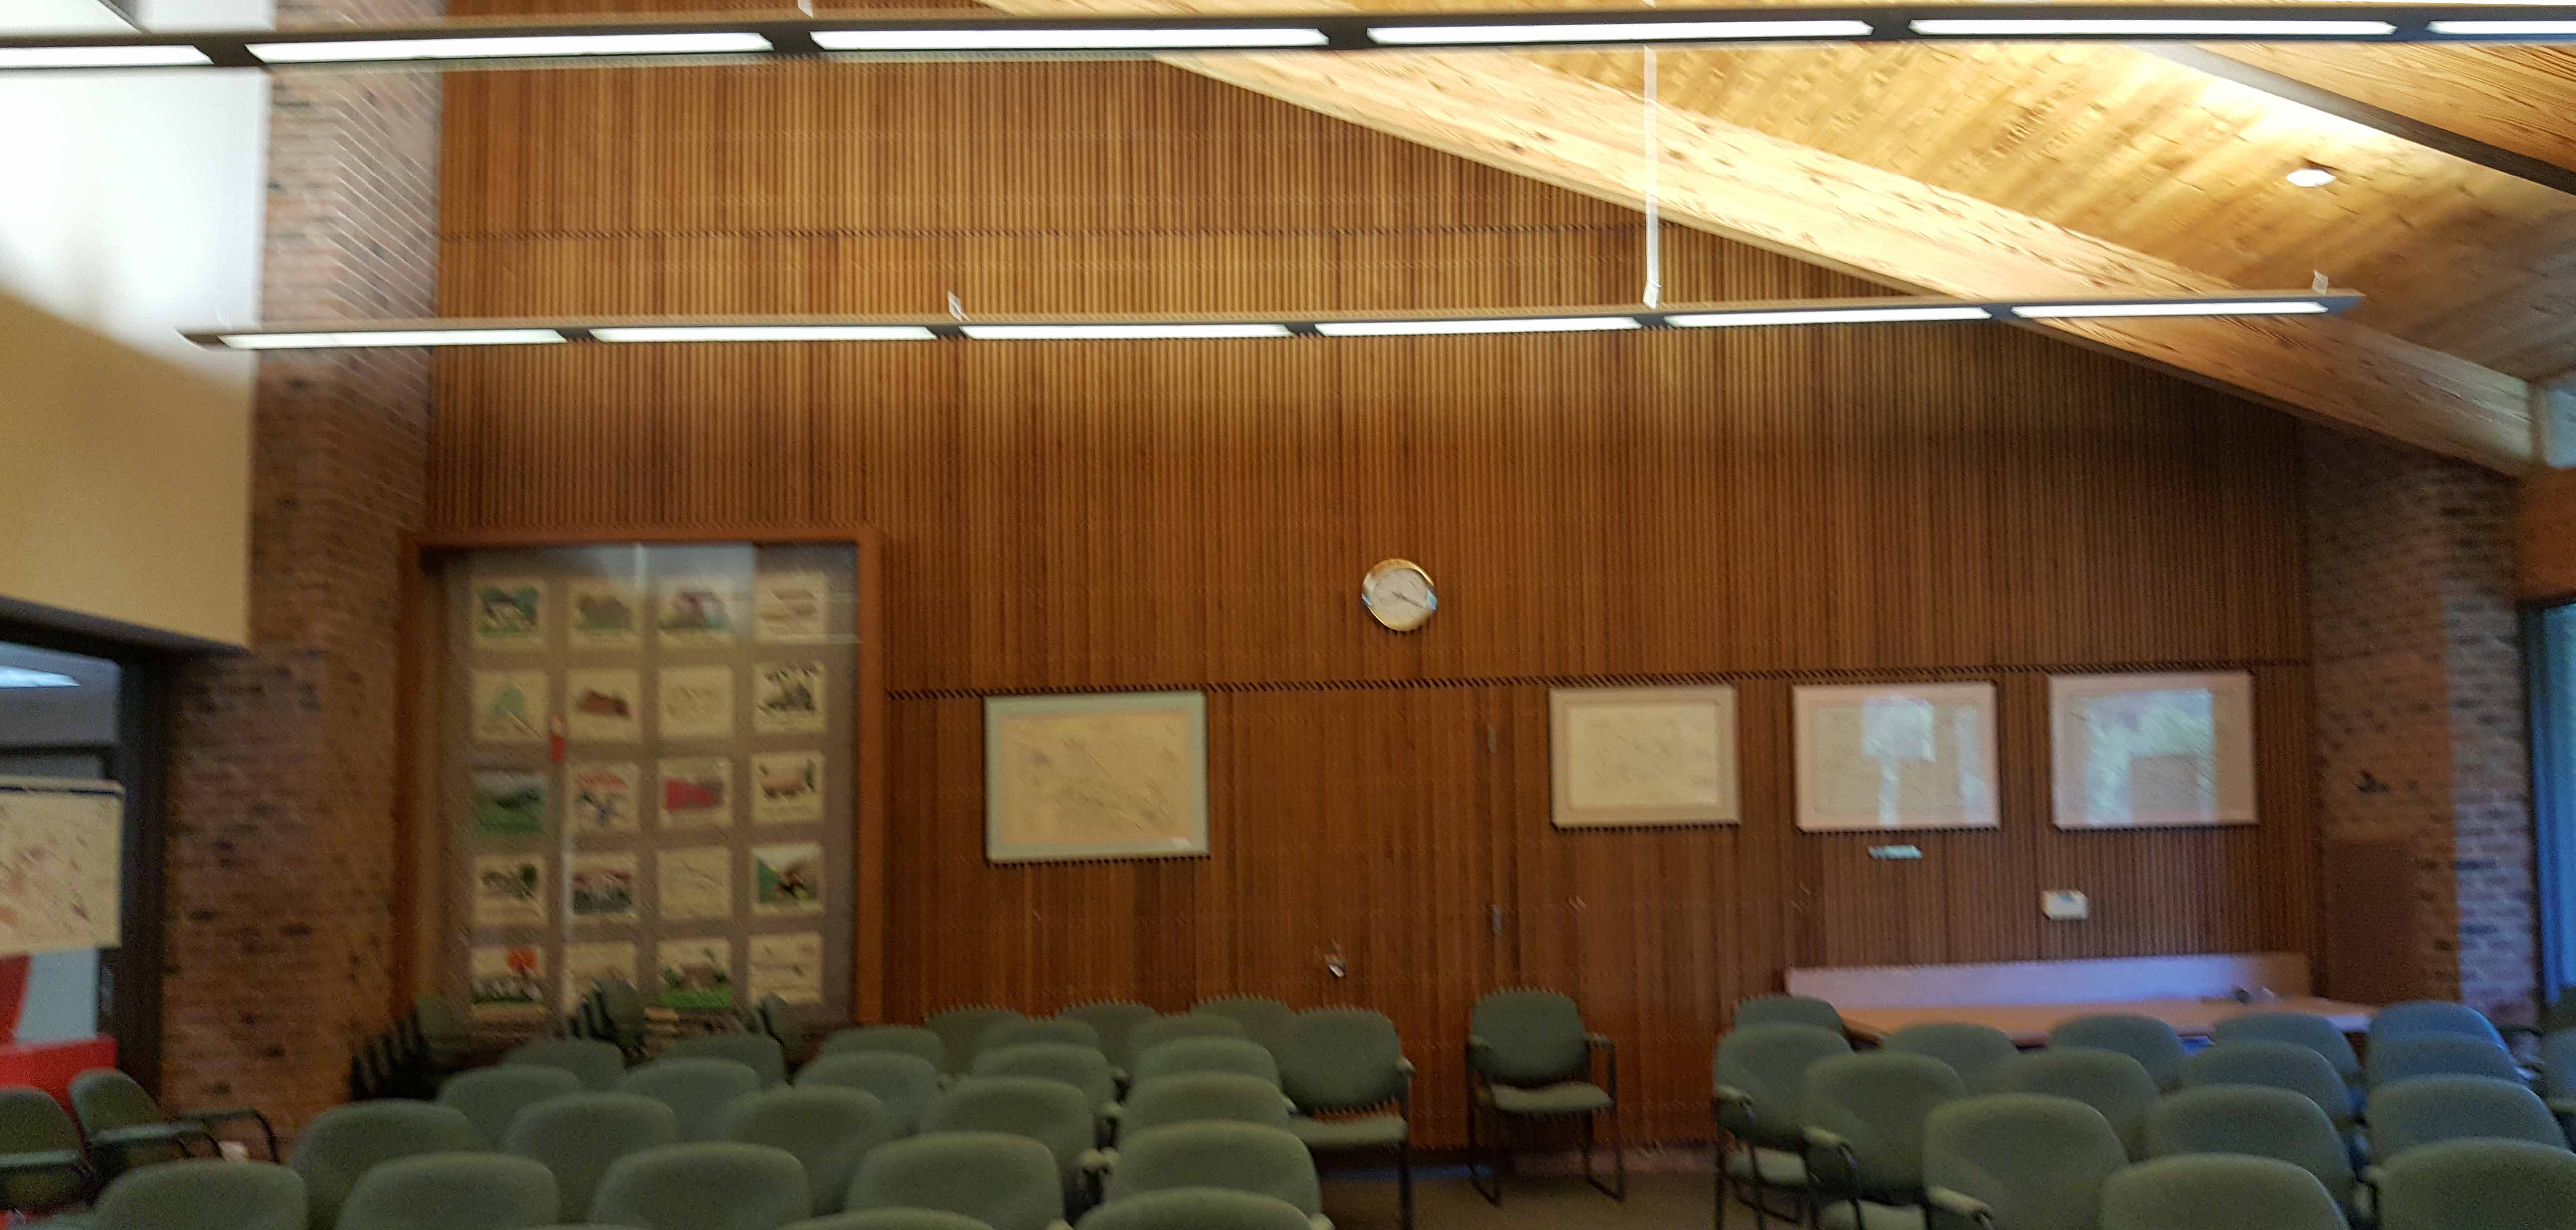 A large meeting room with wood plank ceiling faces acoustical challenges.